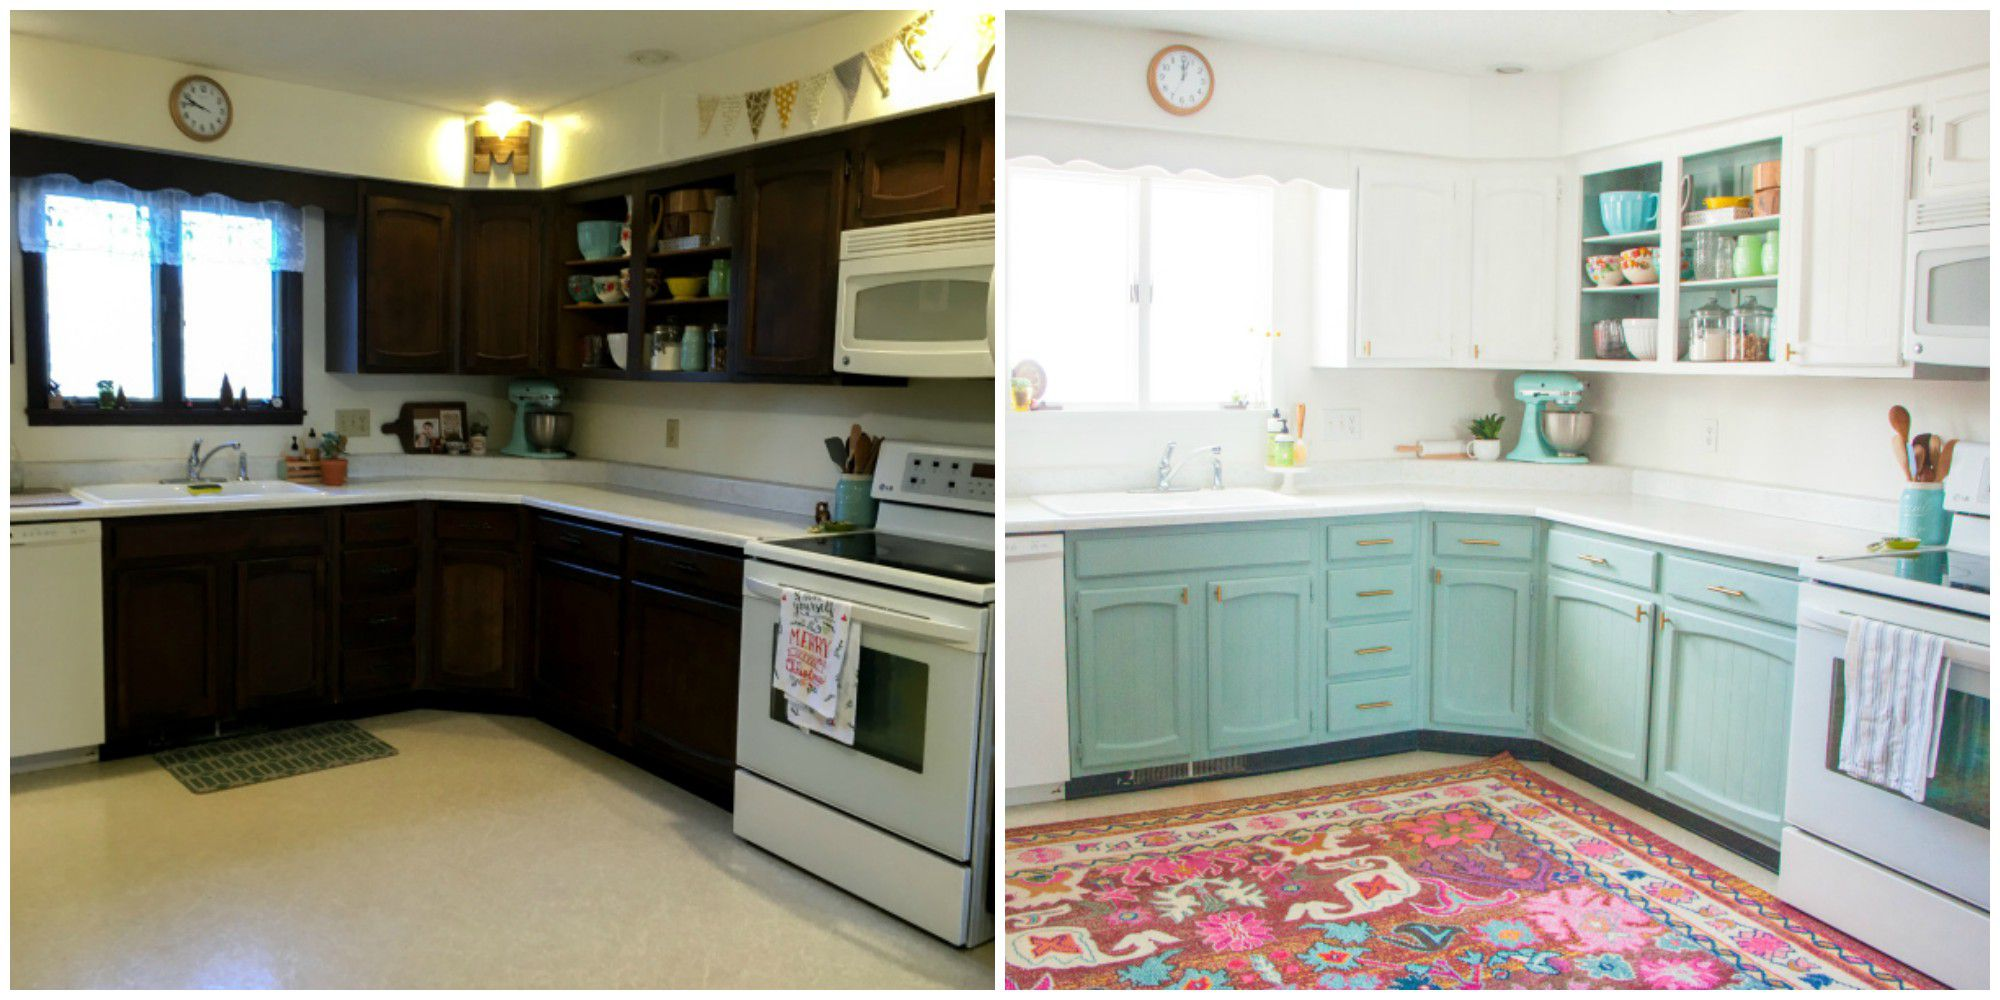 Impressing Kitchen Remodel Before And After Pictures Of Image